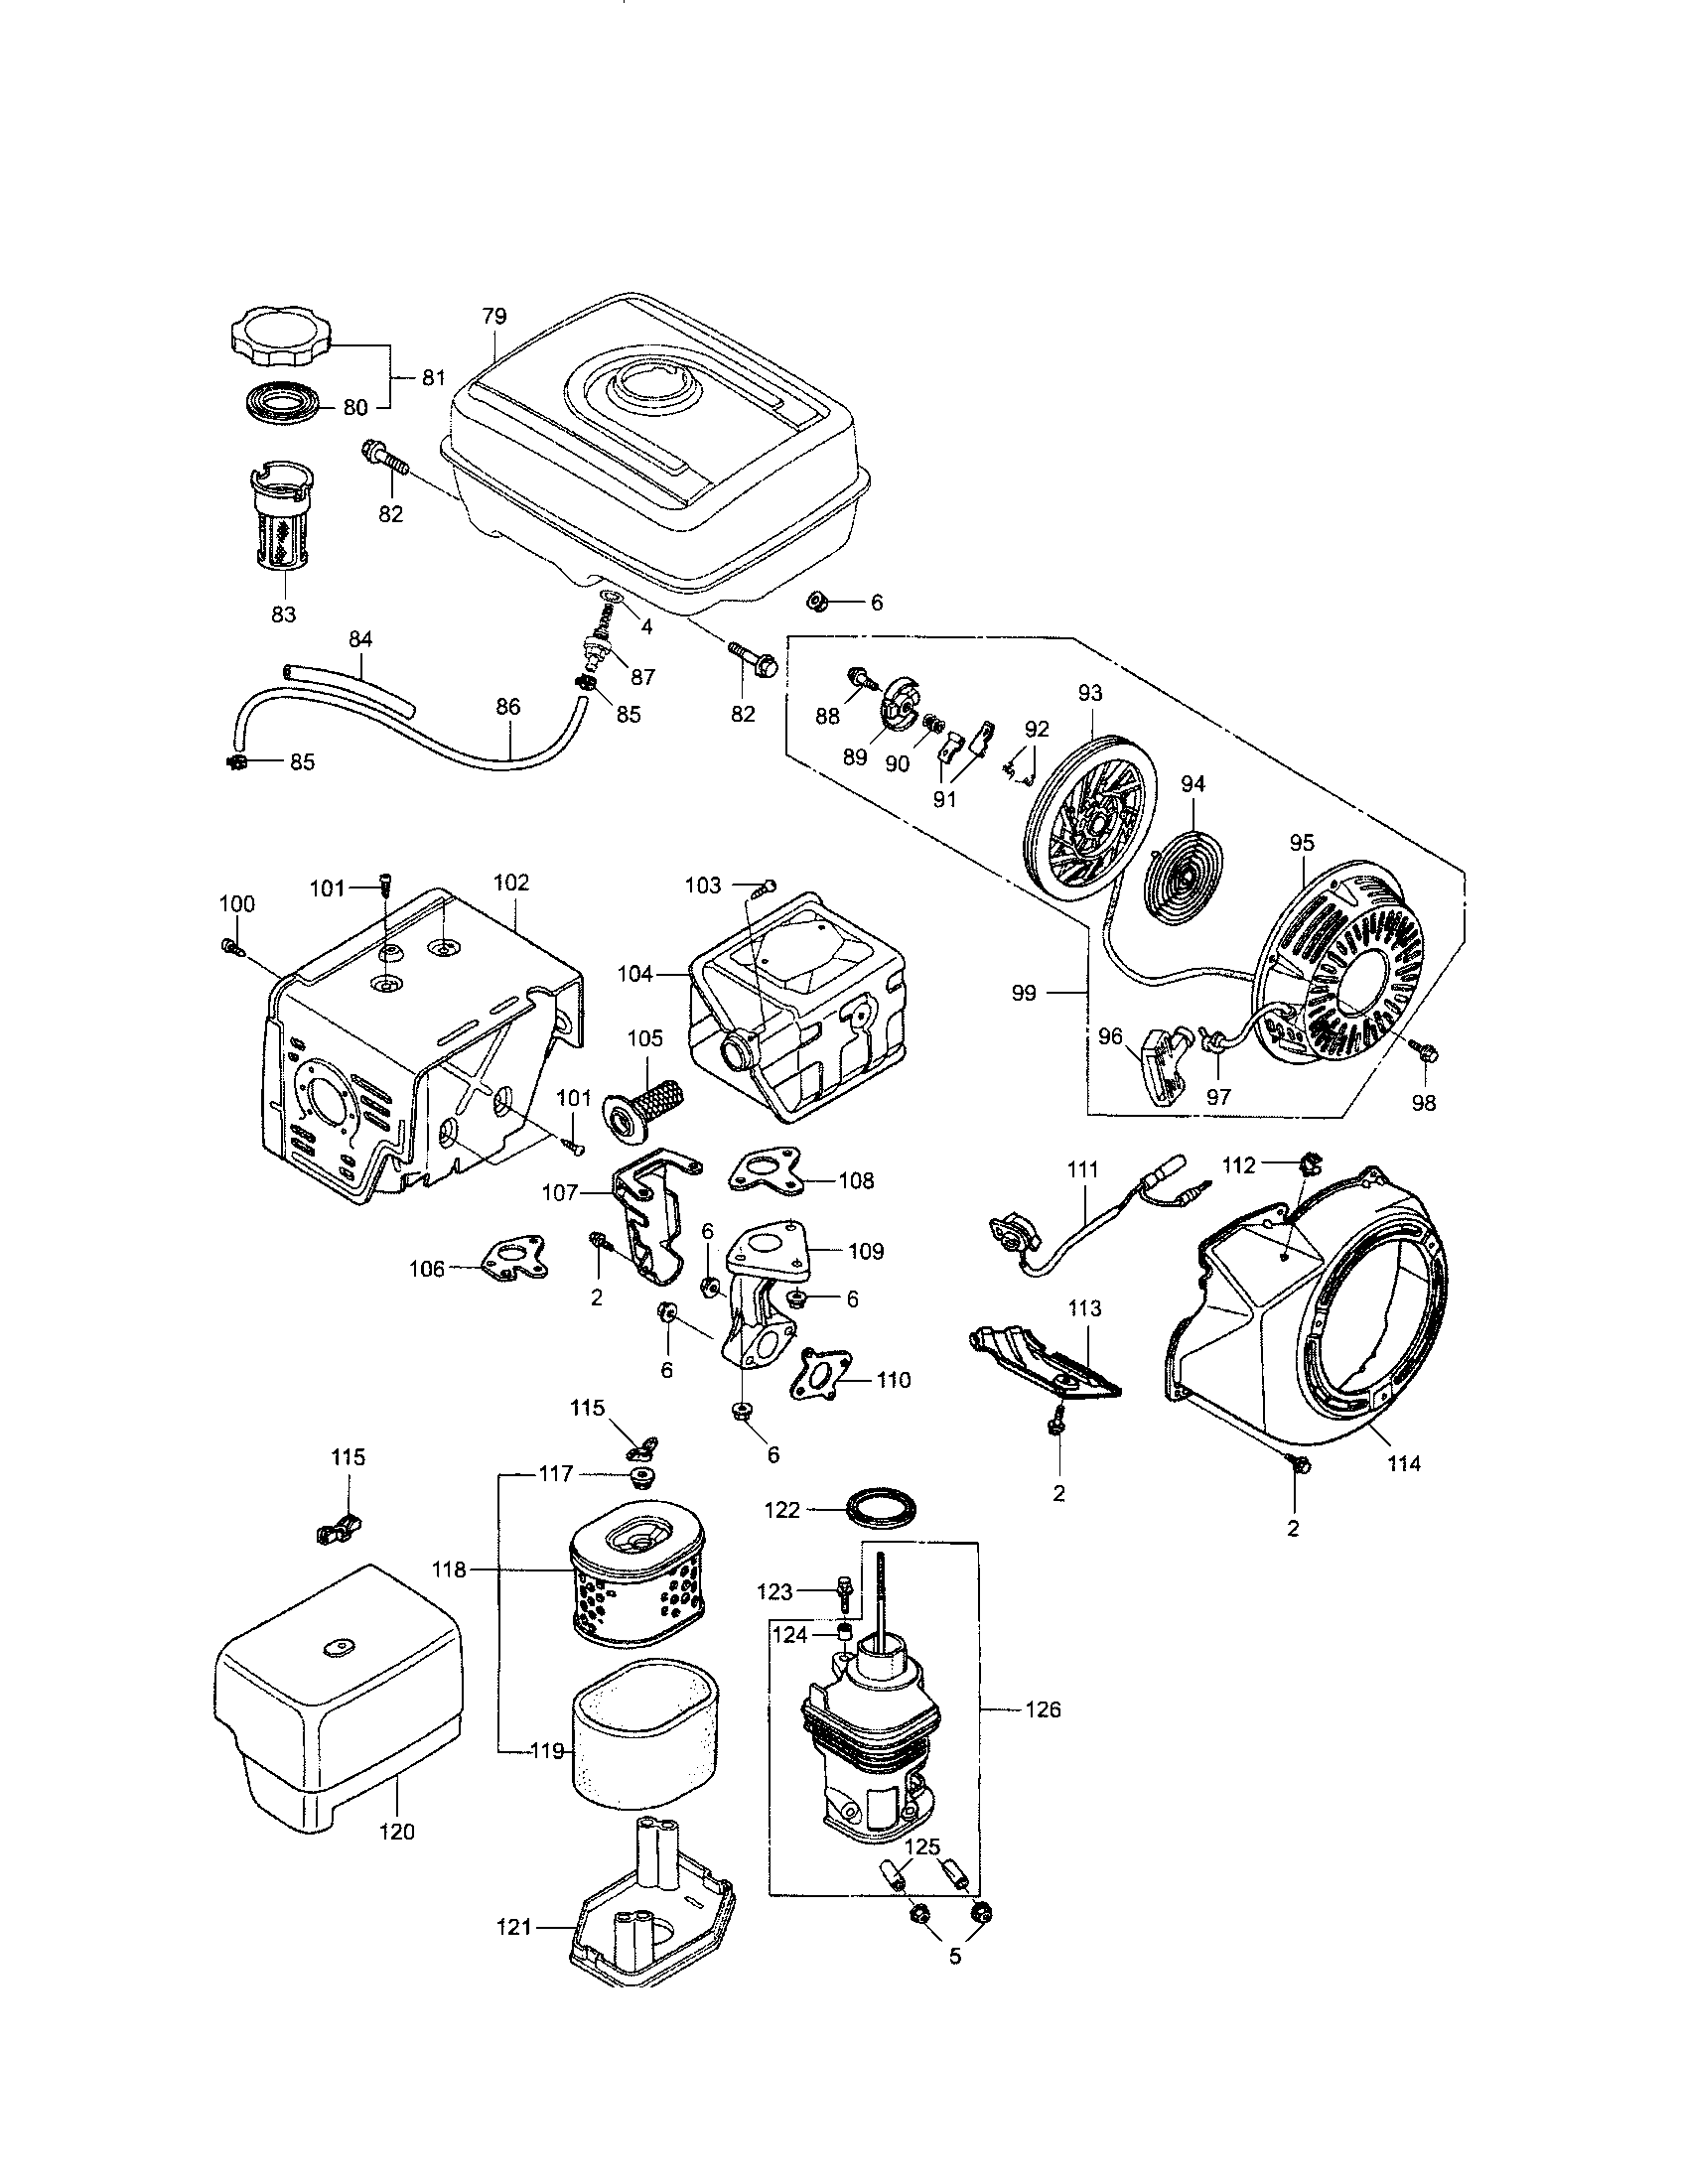 Honda Gx390 Ignition Wiring